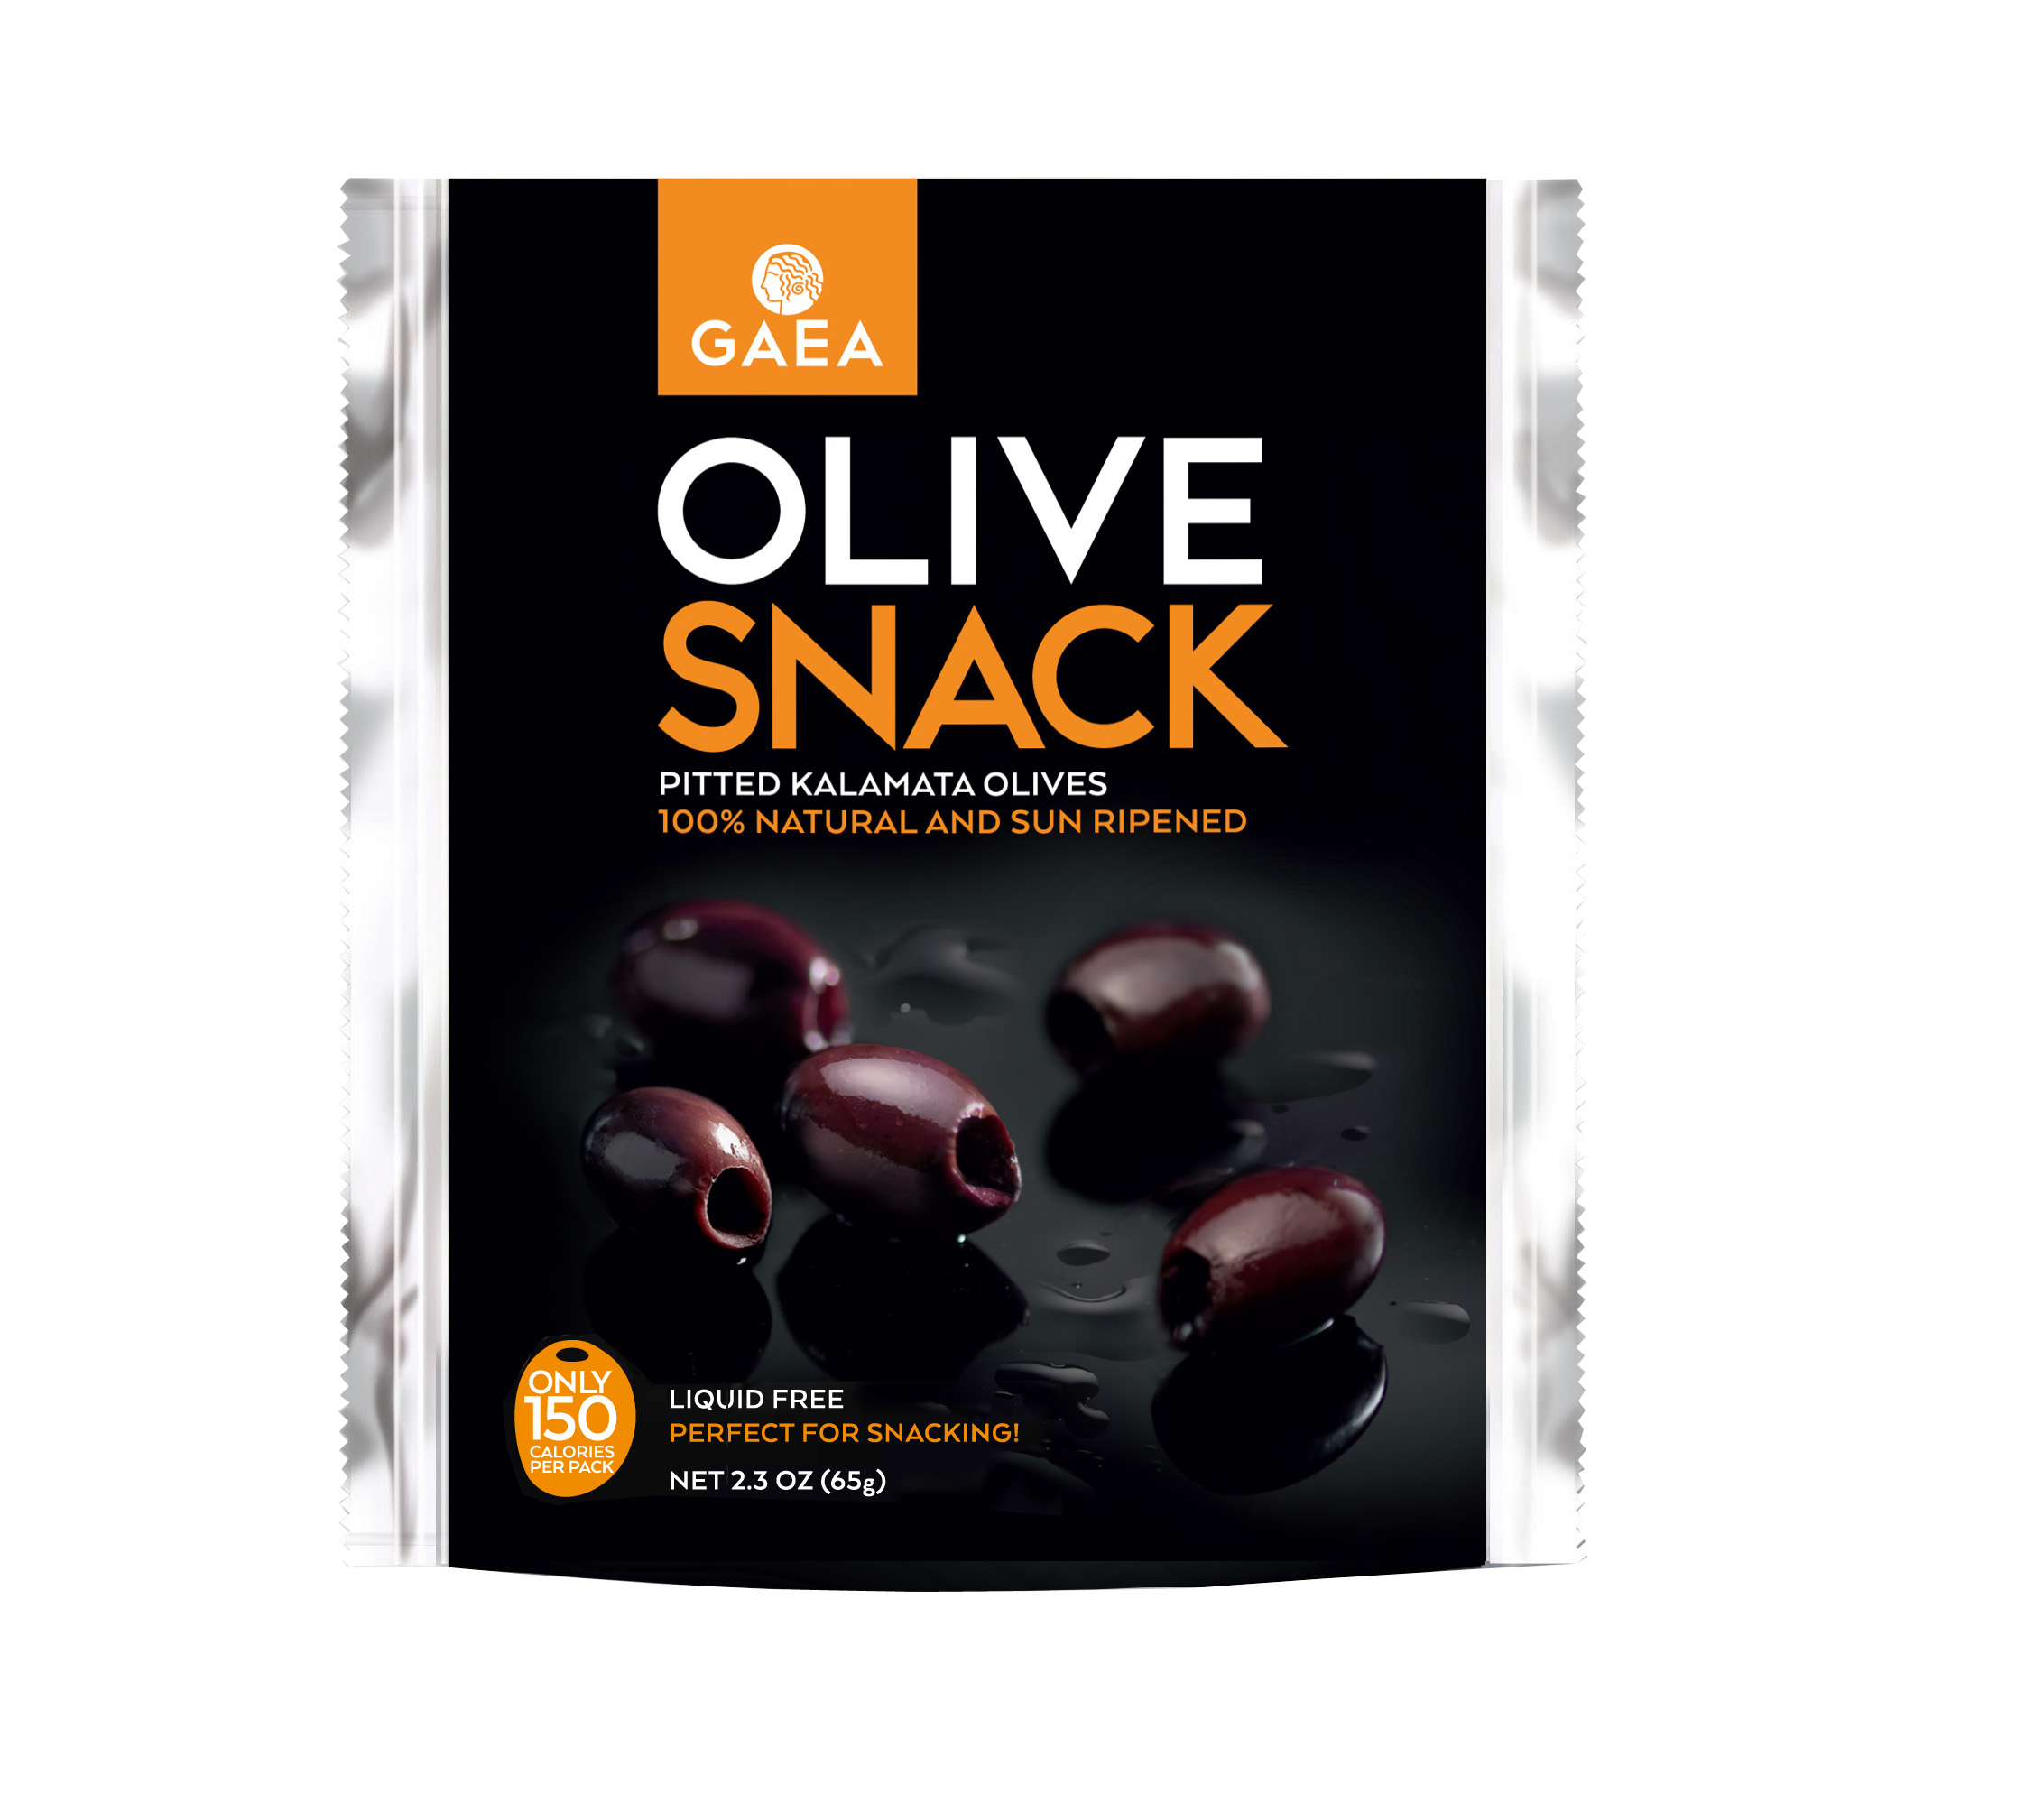 GAEA OLIVE SNACK//65g//PITTED KALAMATA